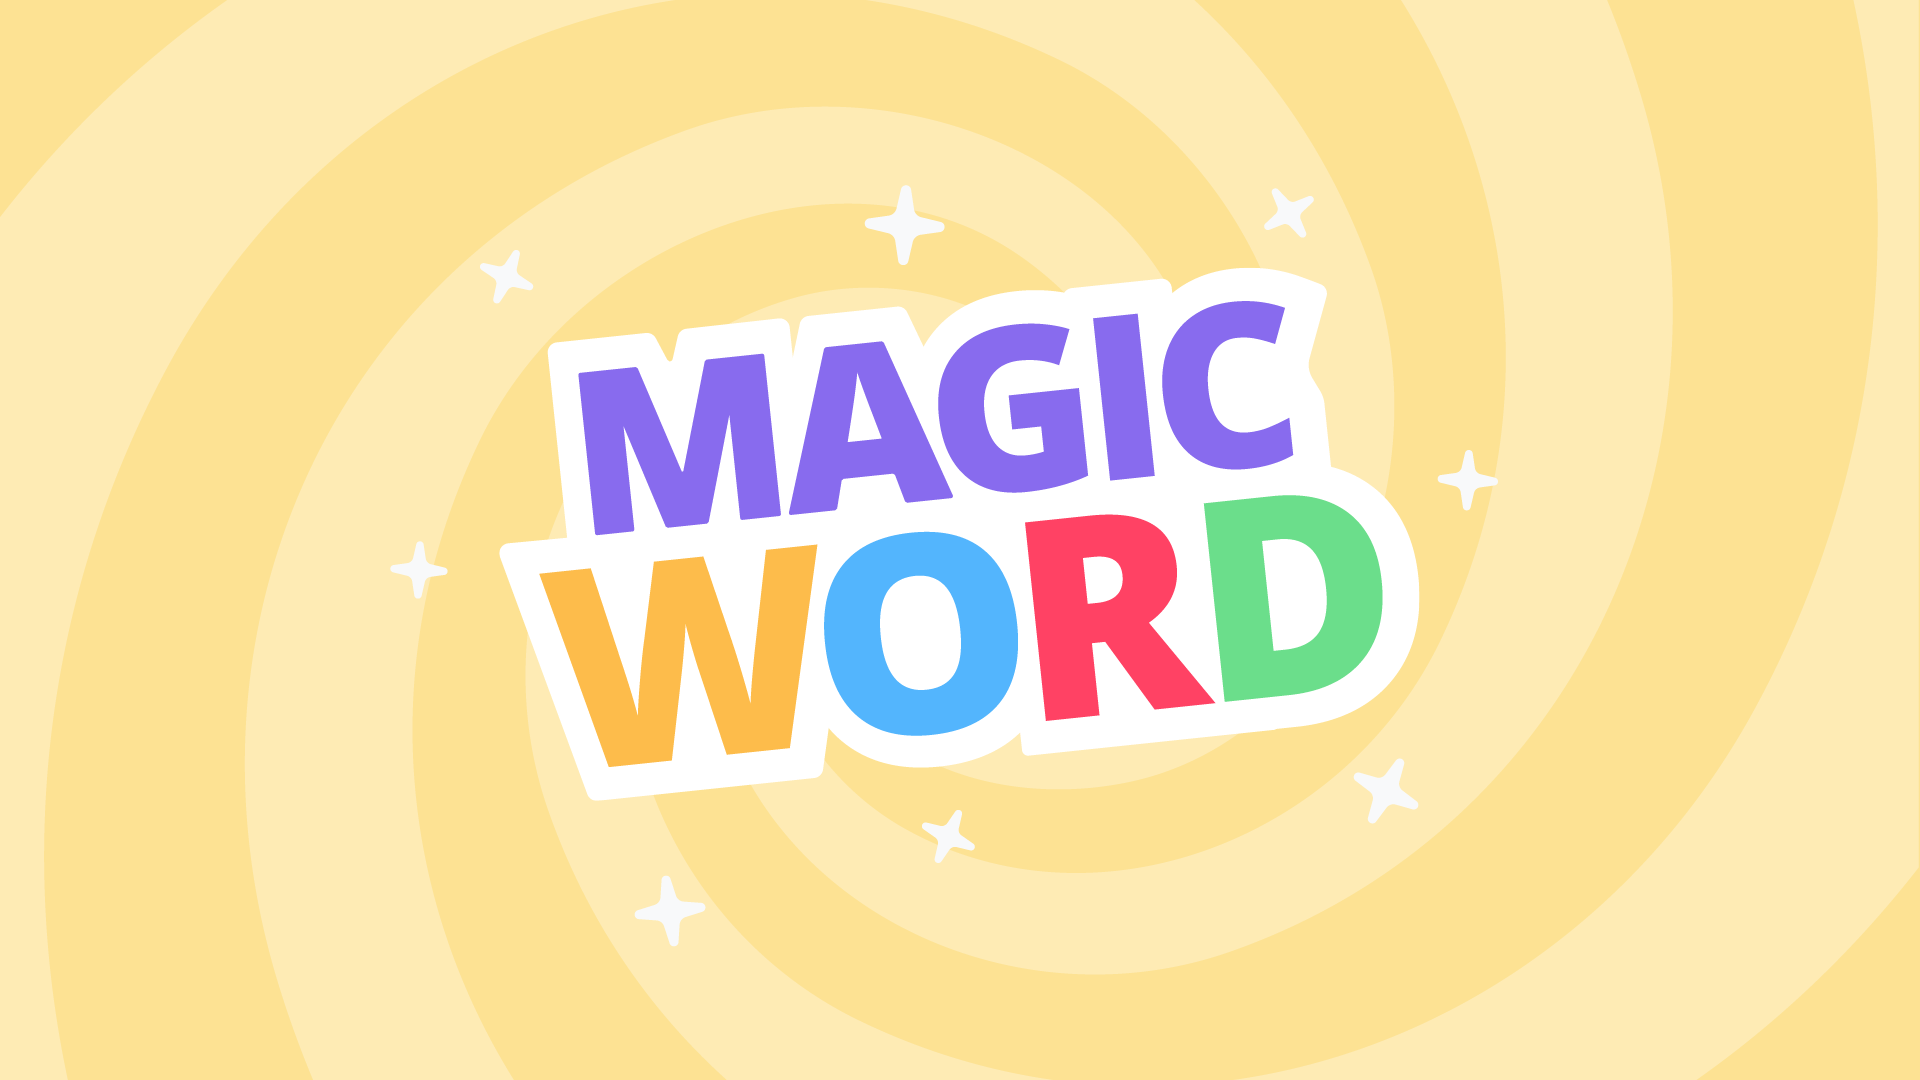 Magic Word is a new word puzzle game for smart displays that uses GIFs as clues